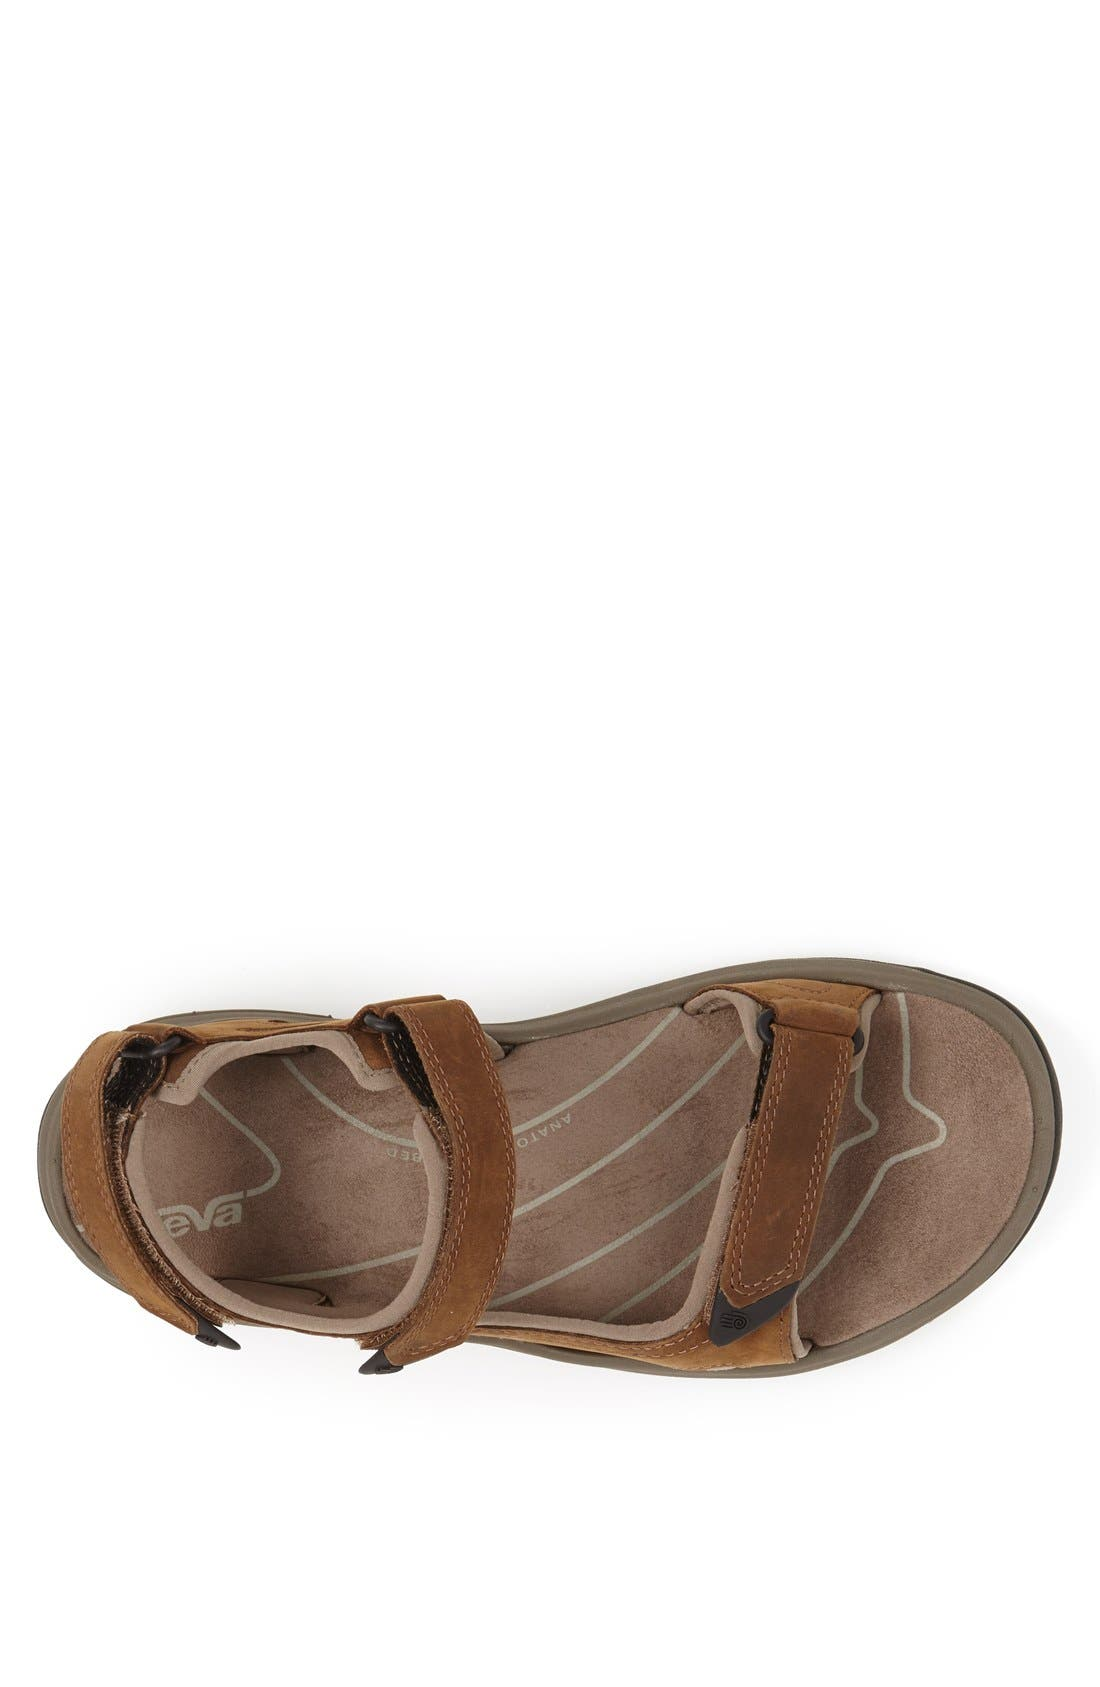 Alternate Image 3  - Teva 'Jetter' Sandal (Men)